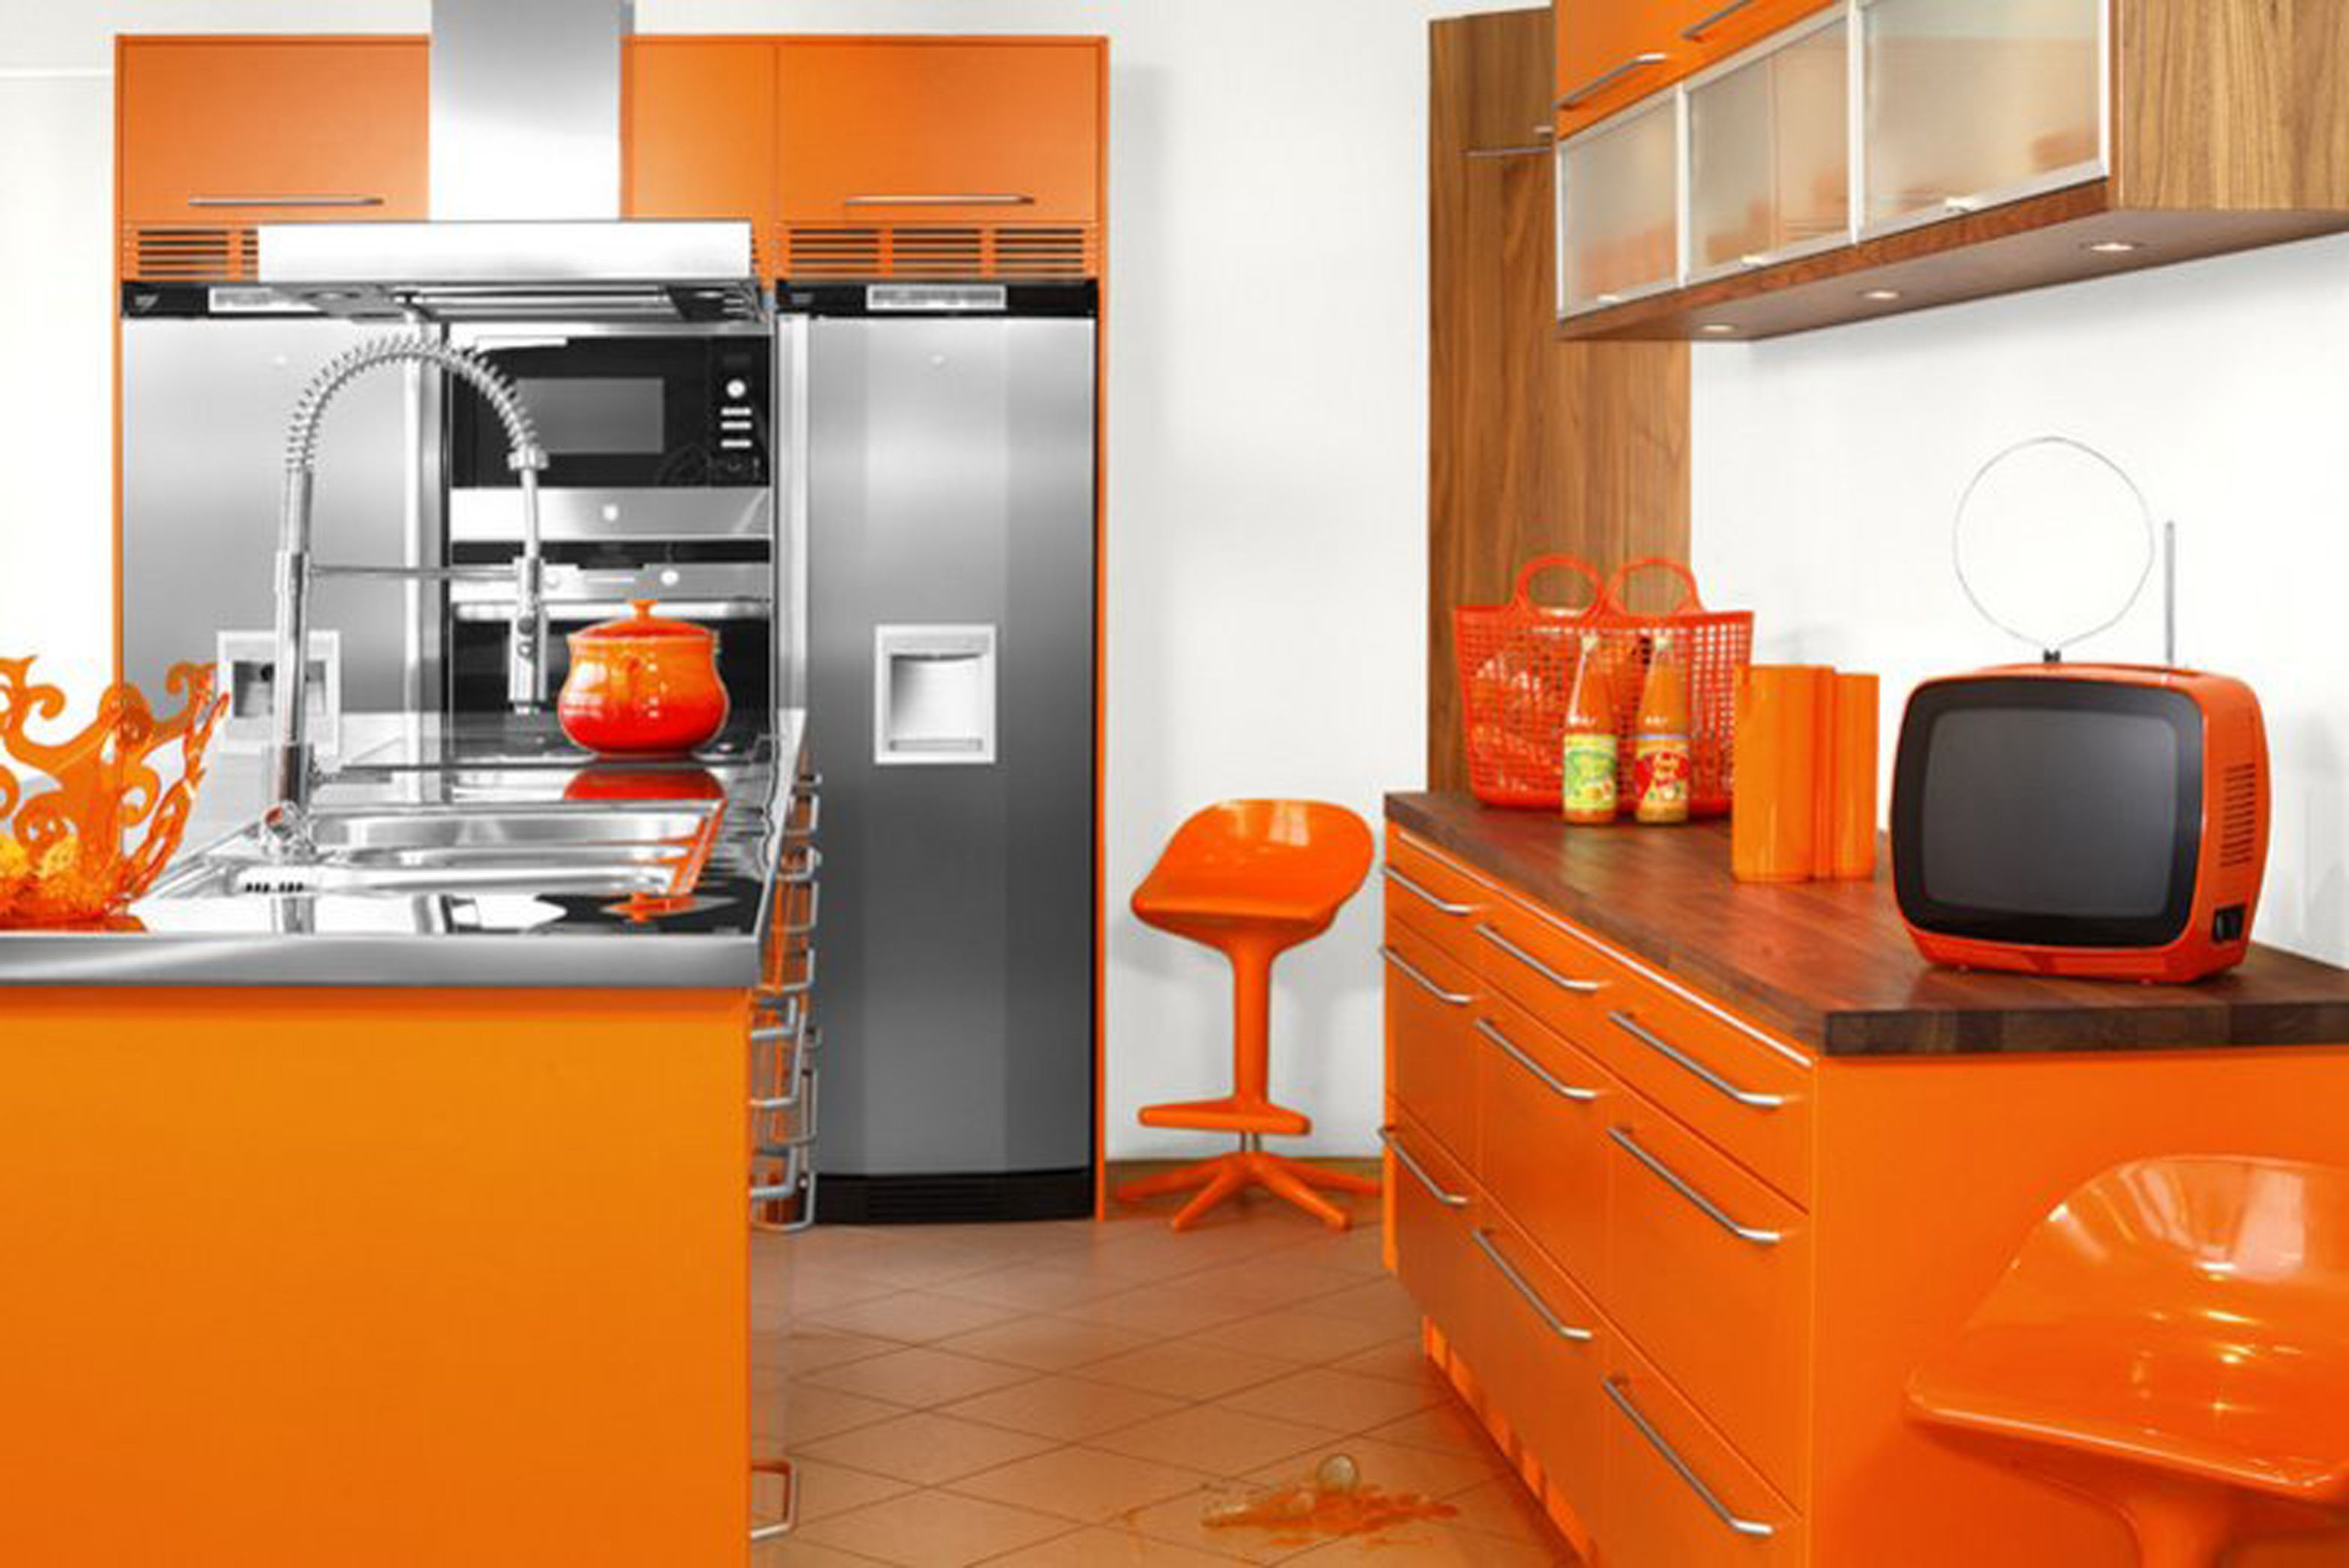 Kitchen Design Orange Simple New Home Kitchen Design Ideas White Kitchen Cabinets Design Ideas Inspiration Design